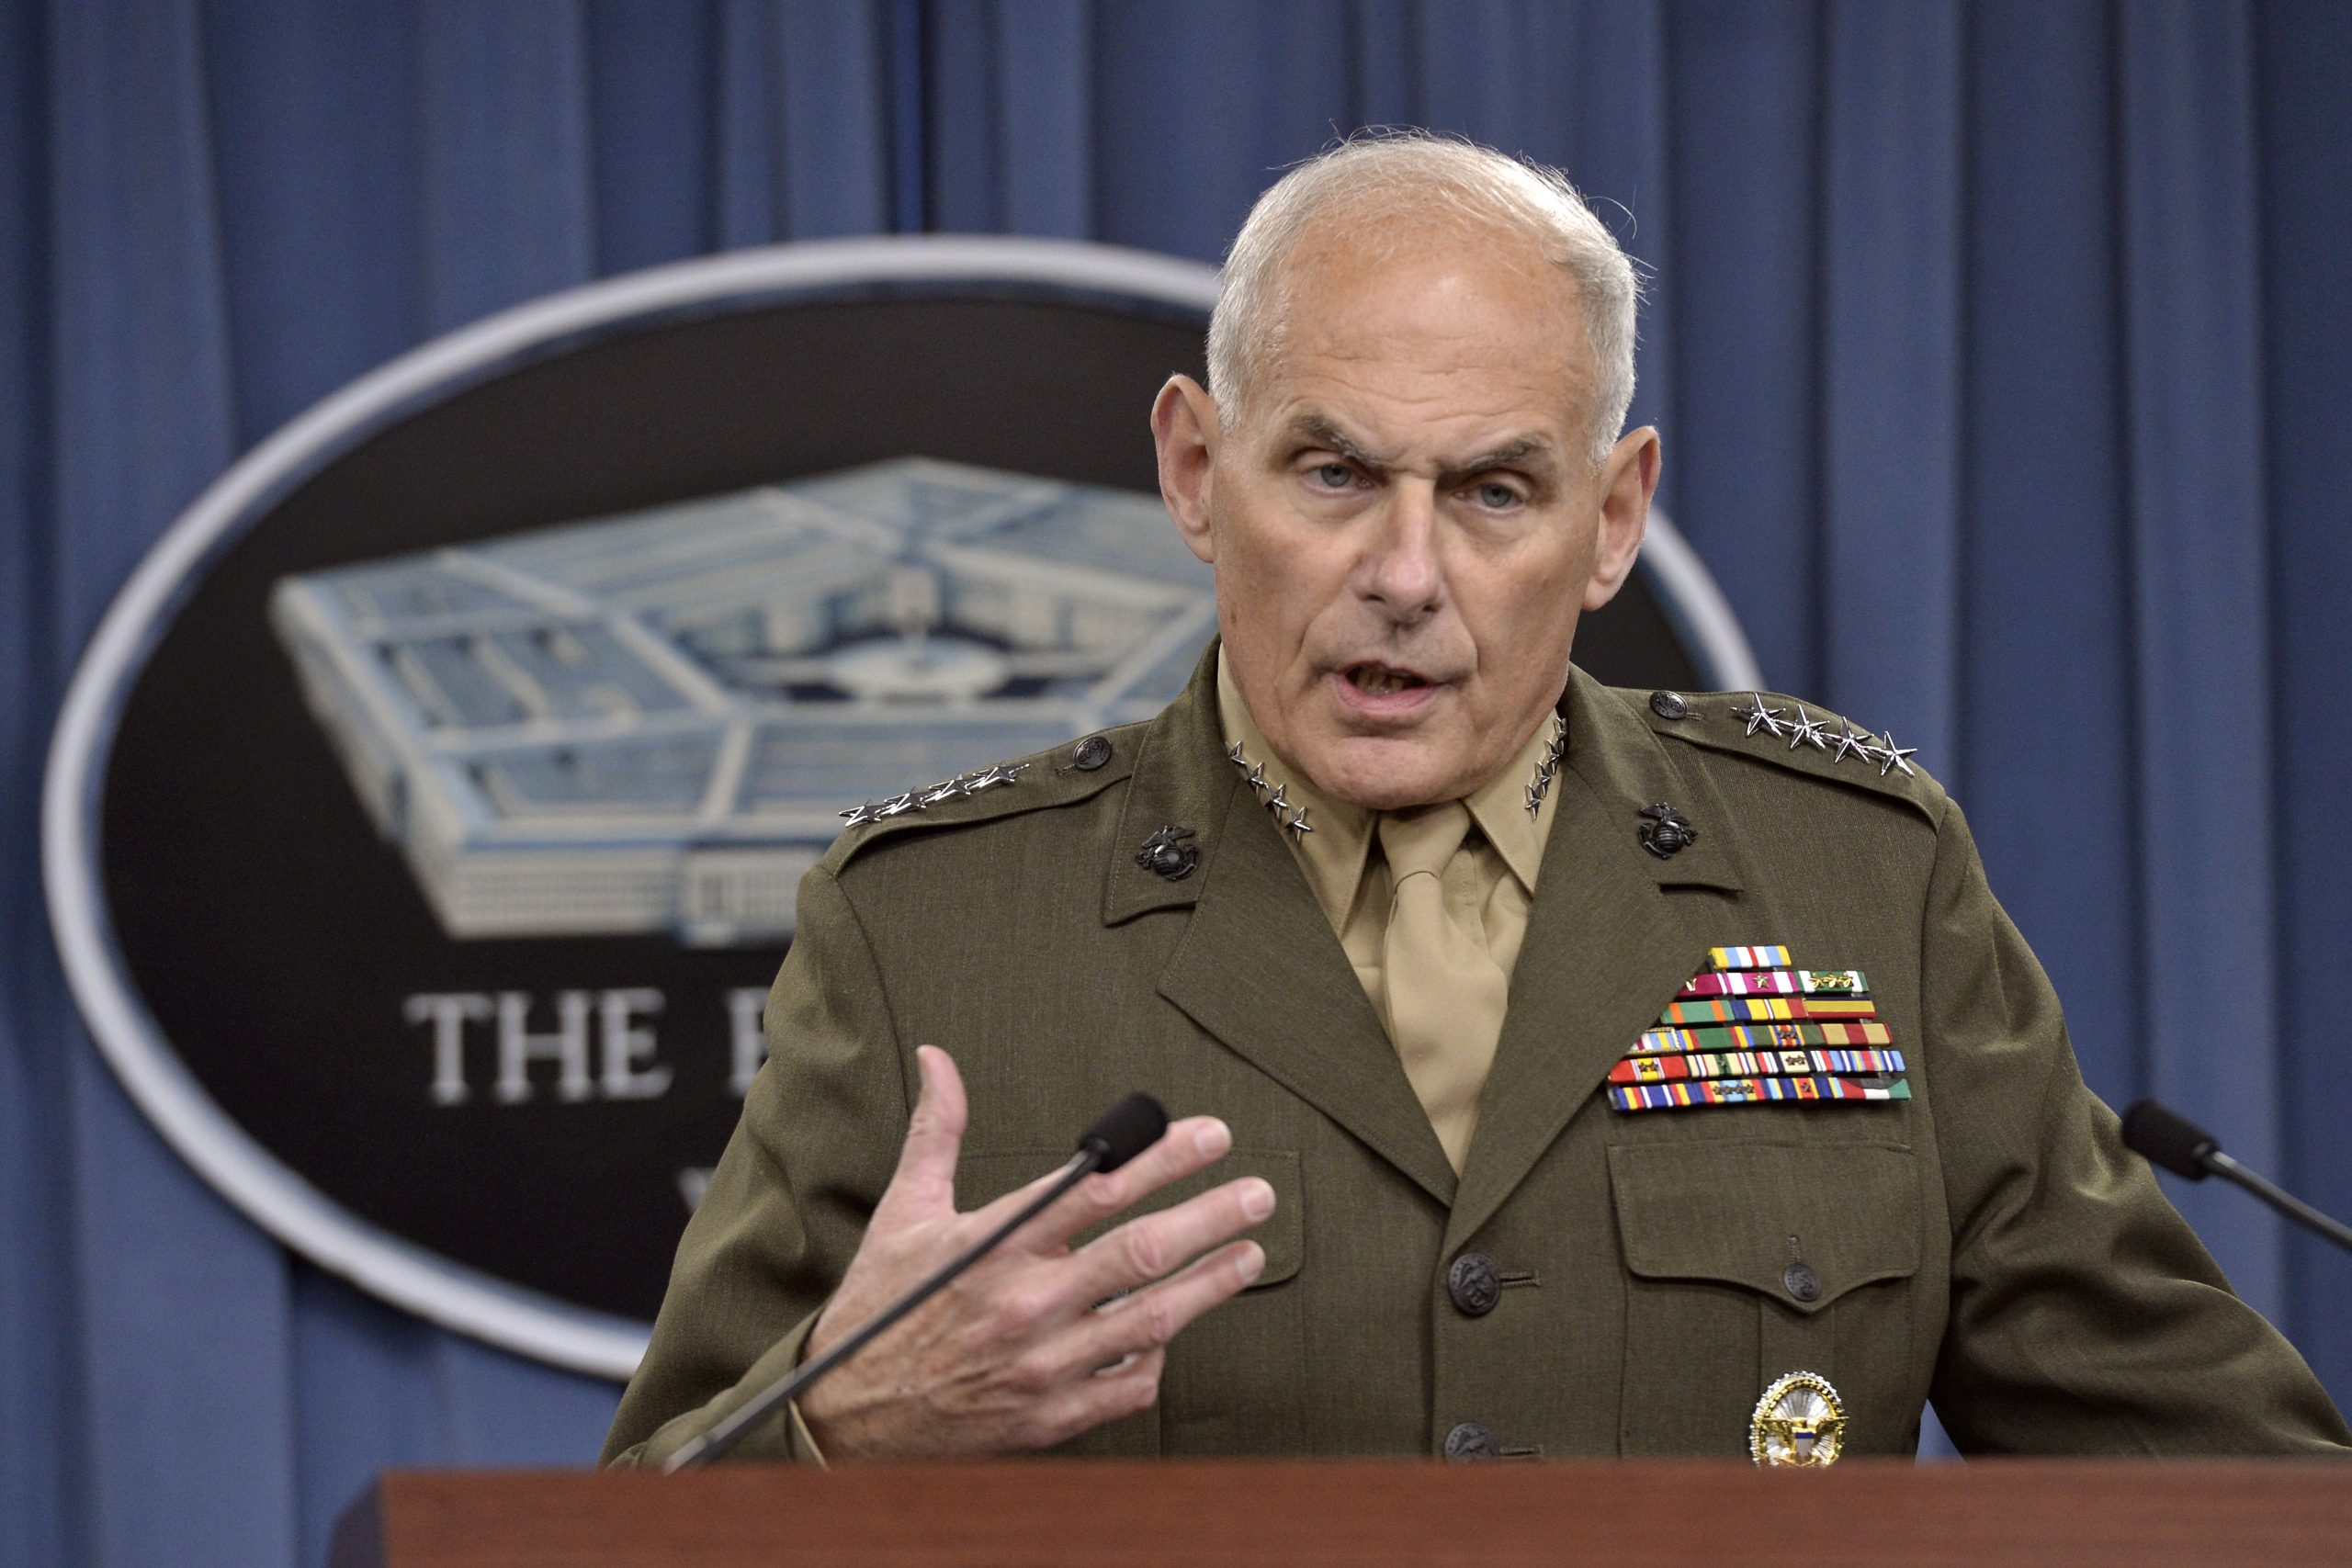 John Kelly: 'You Are Not an Informed Citizen' if 'You Only Watch Fox News'